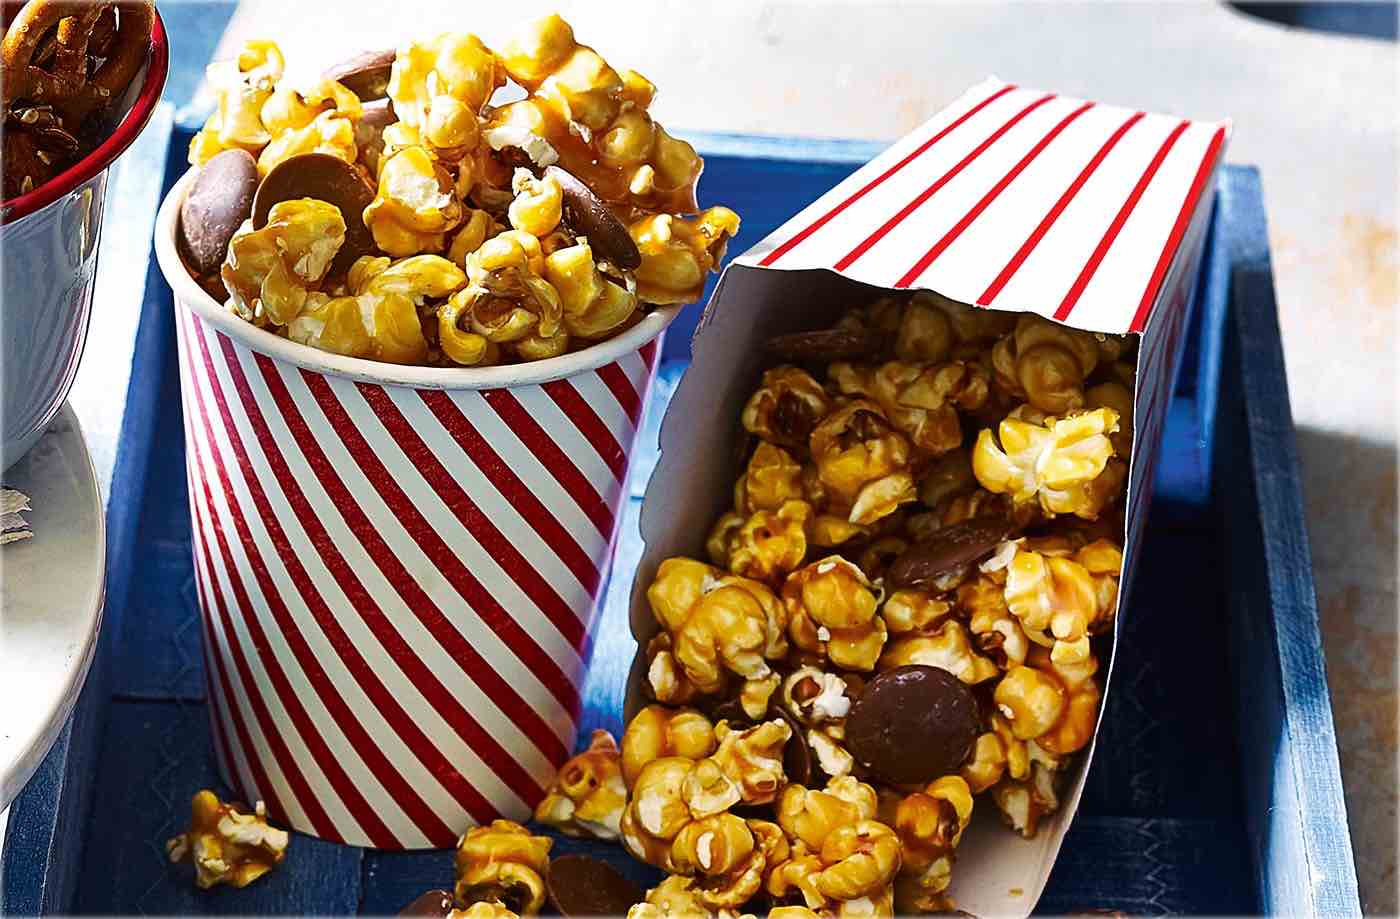 Cinder toffee and chocolate popcorn recipe